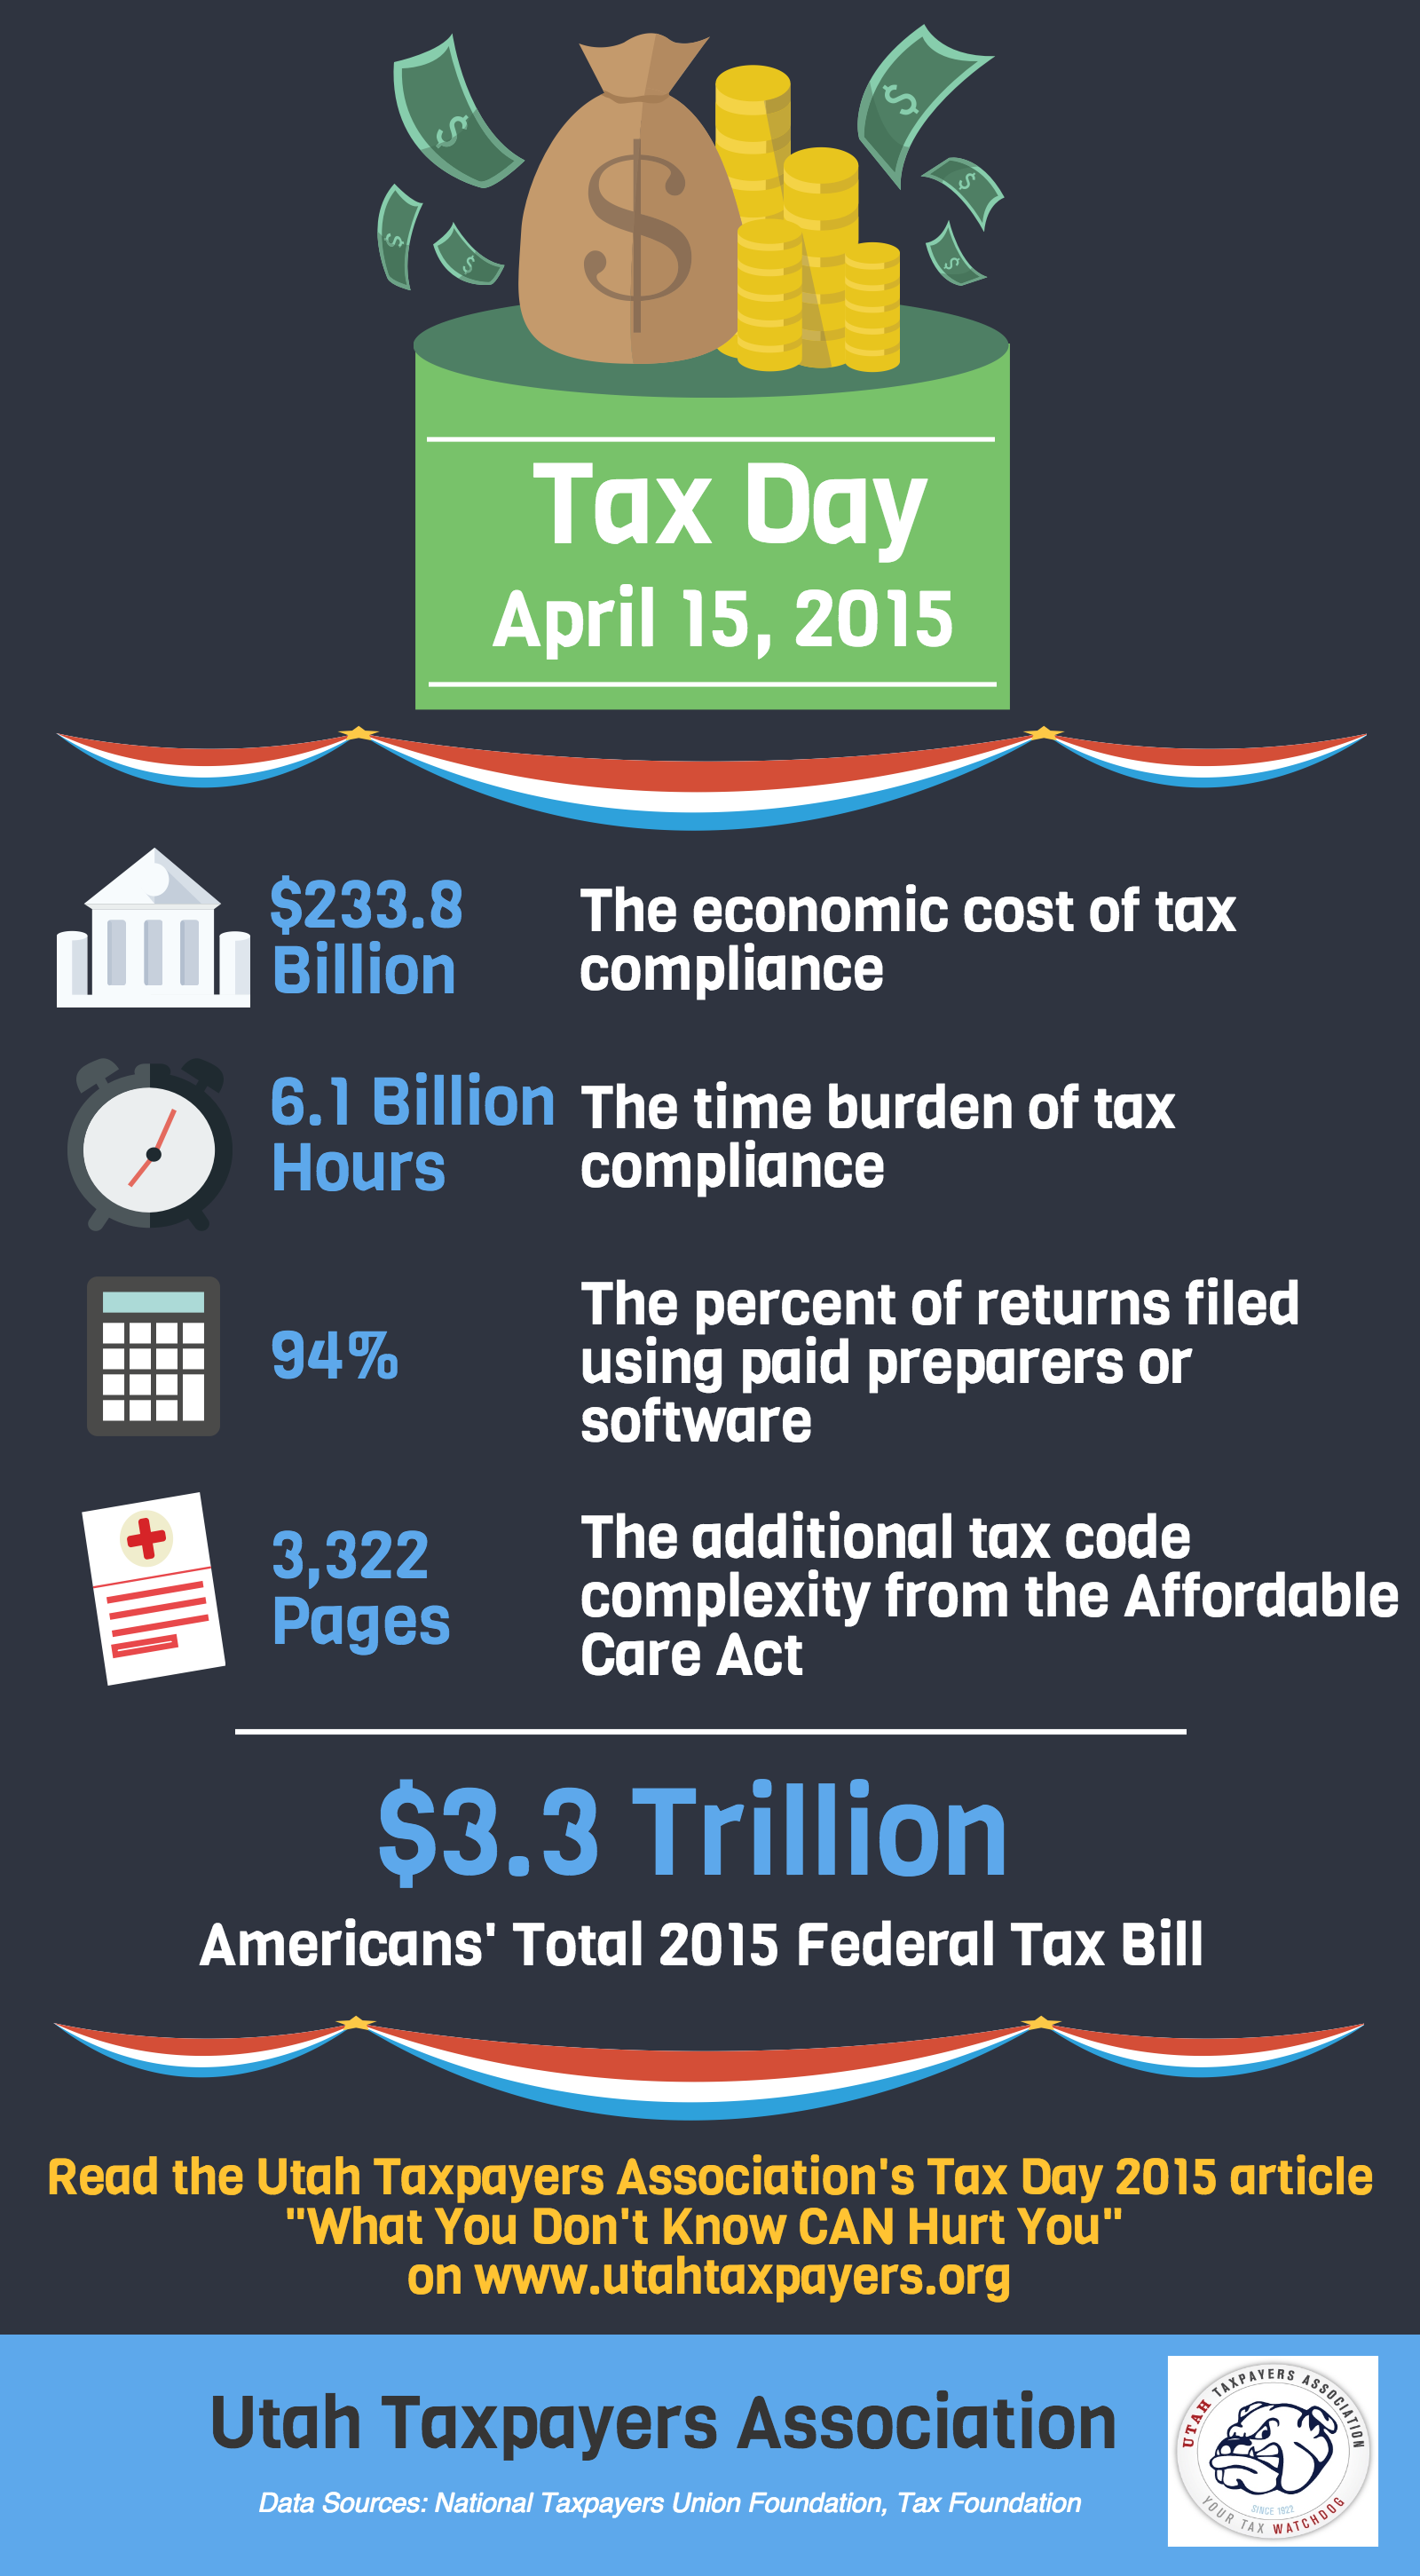 Tax Day 2015 Infographic